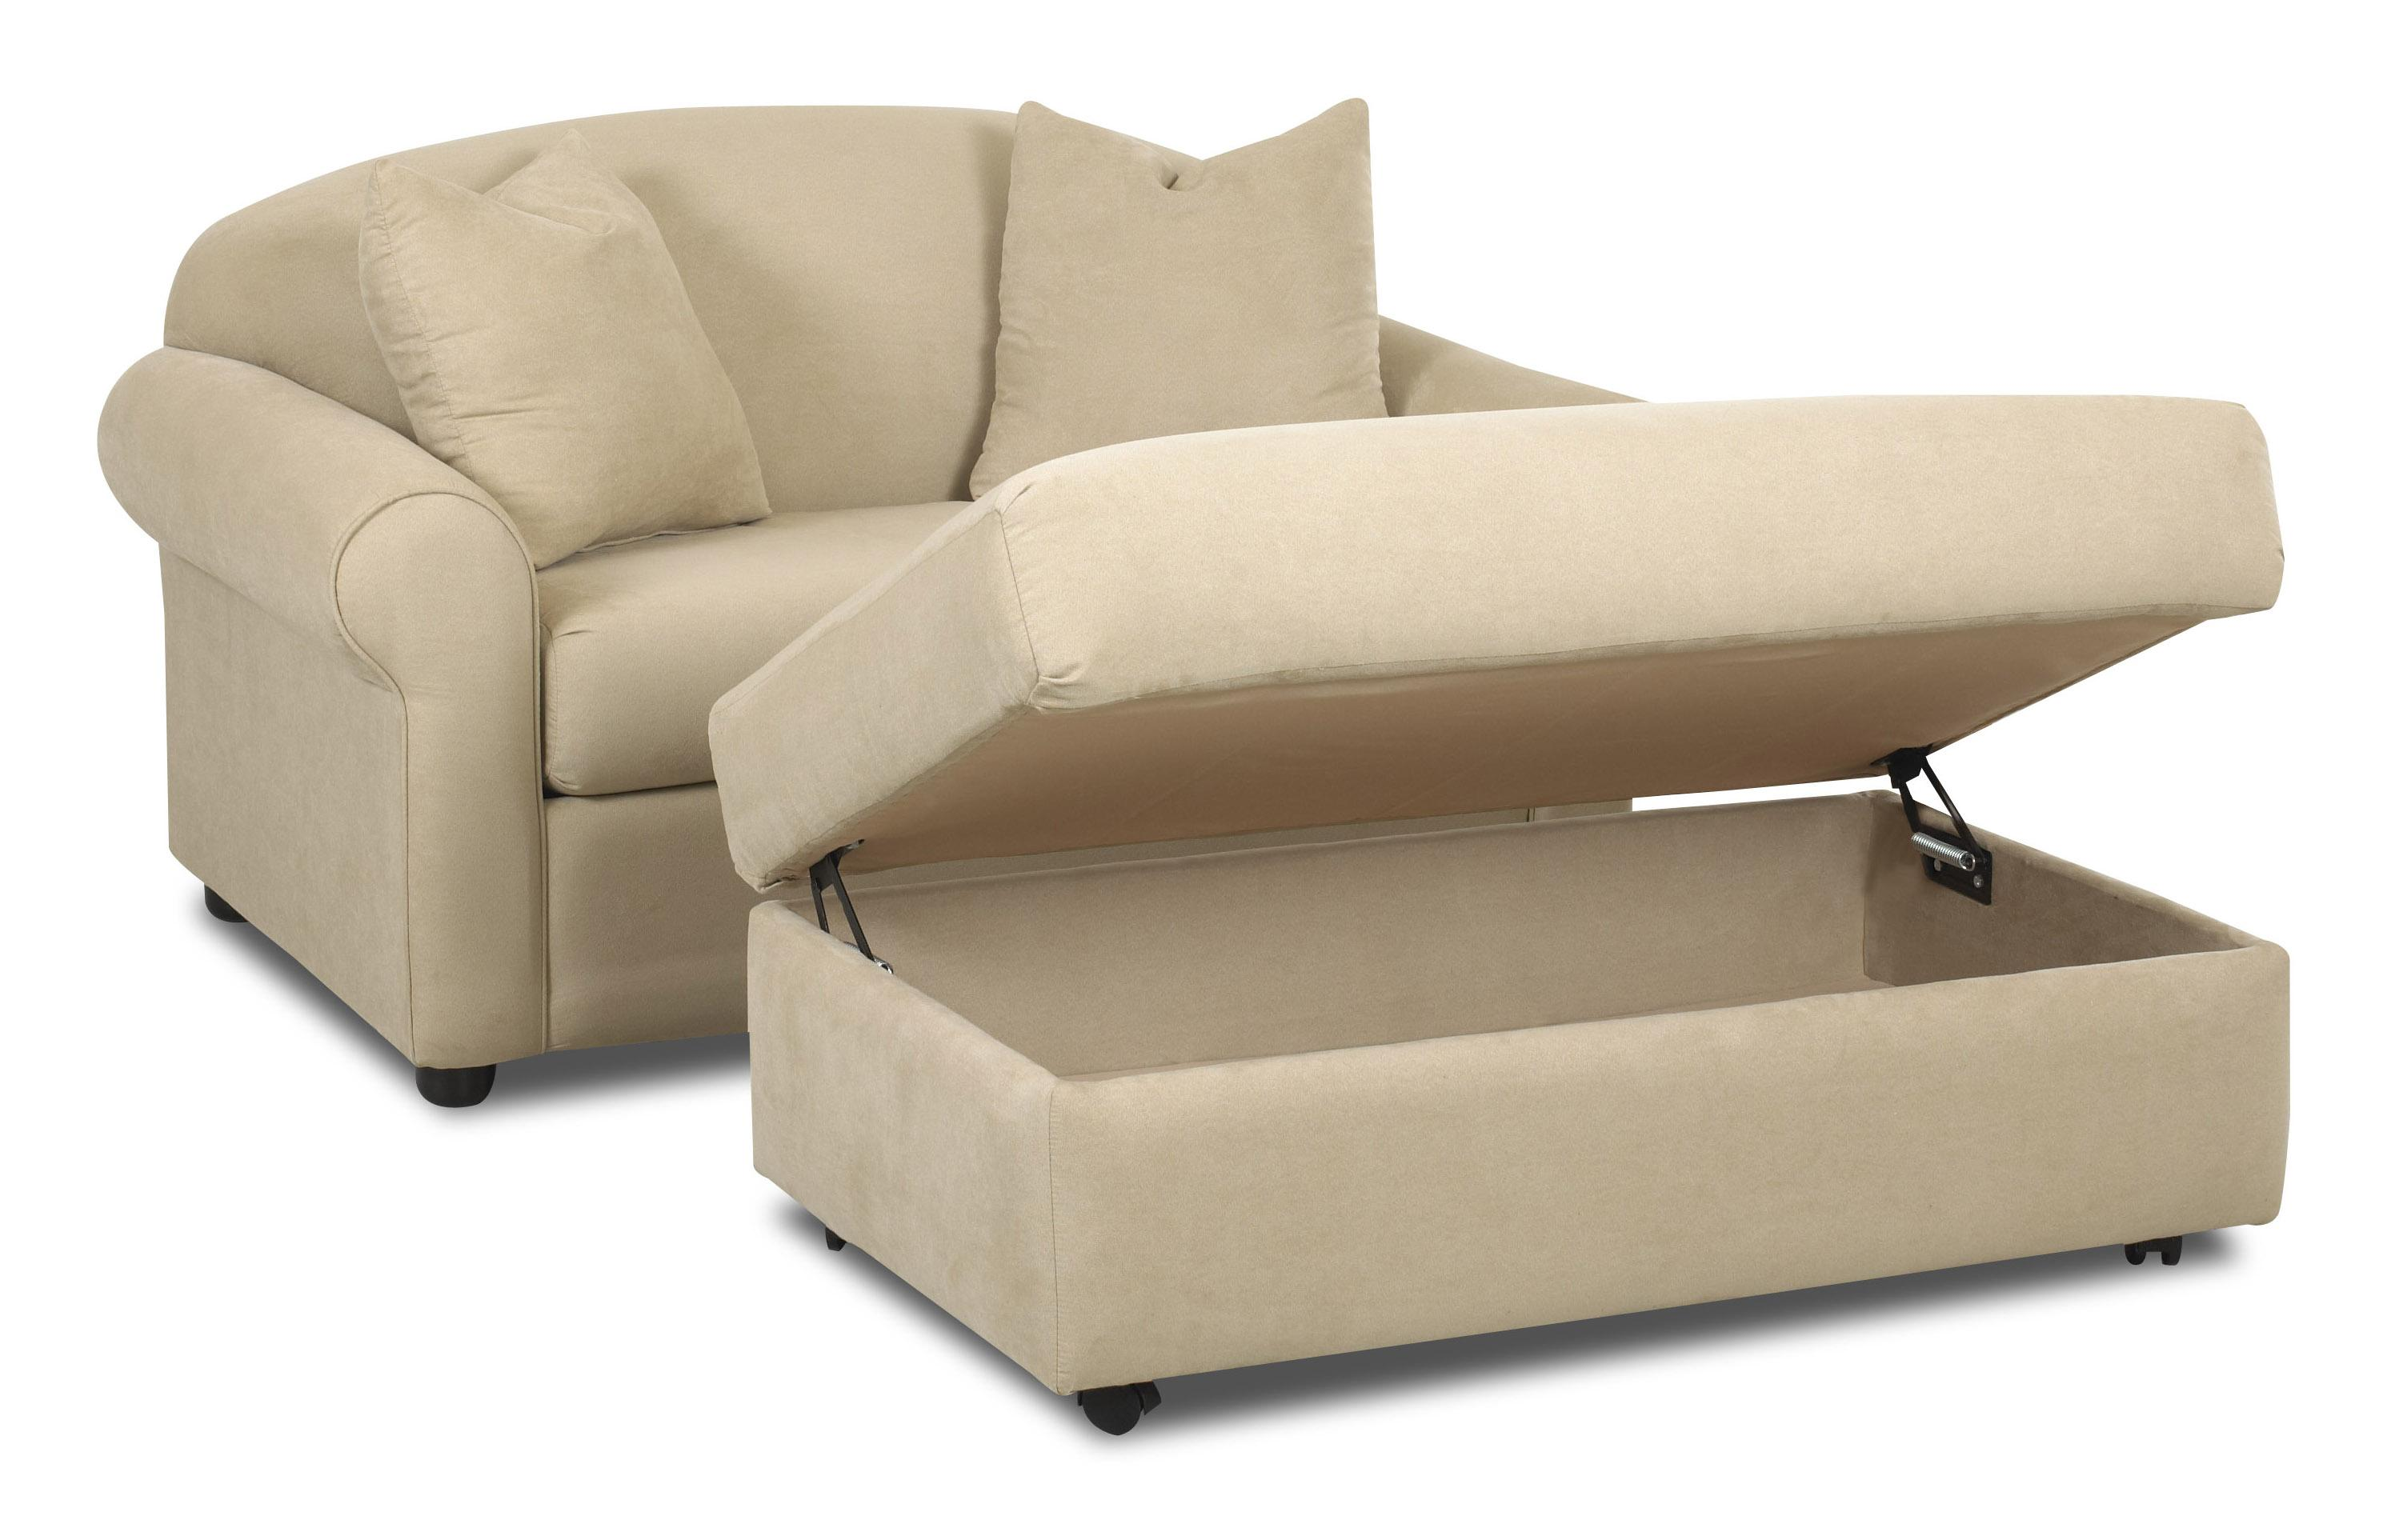 Possibilities Chair Sleeper And Storage Ottoman Set By Klaussner Leather Chaise Lounge Chair Furniture Chair